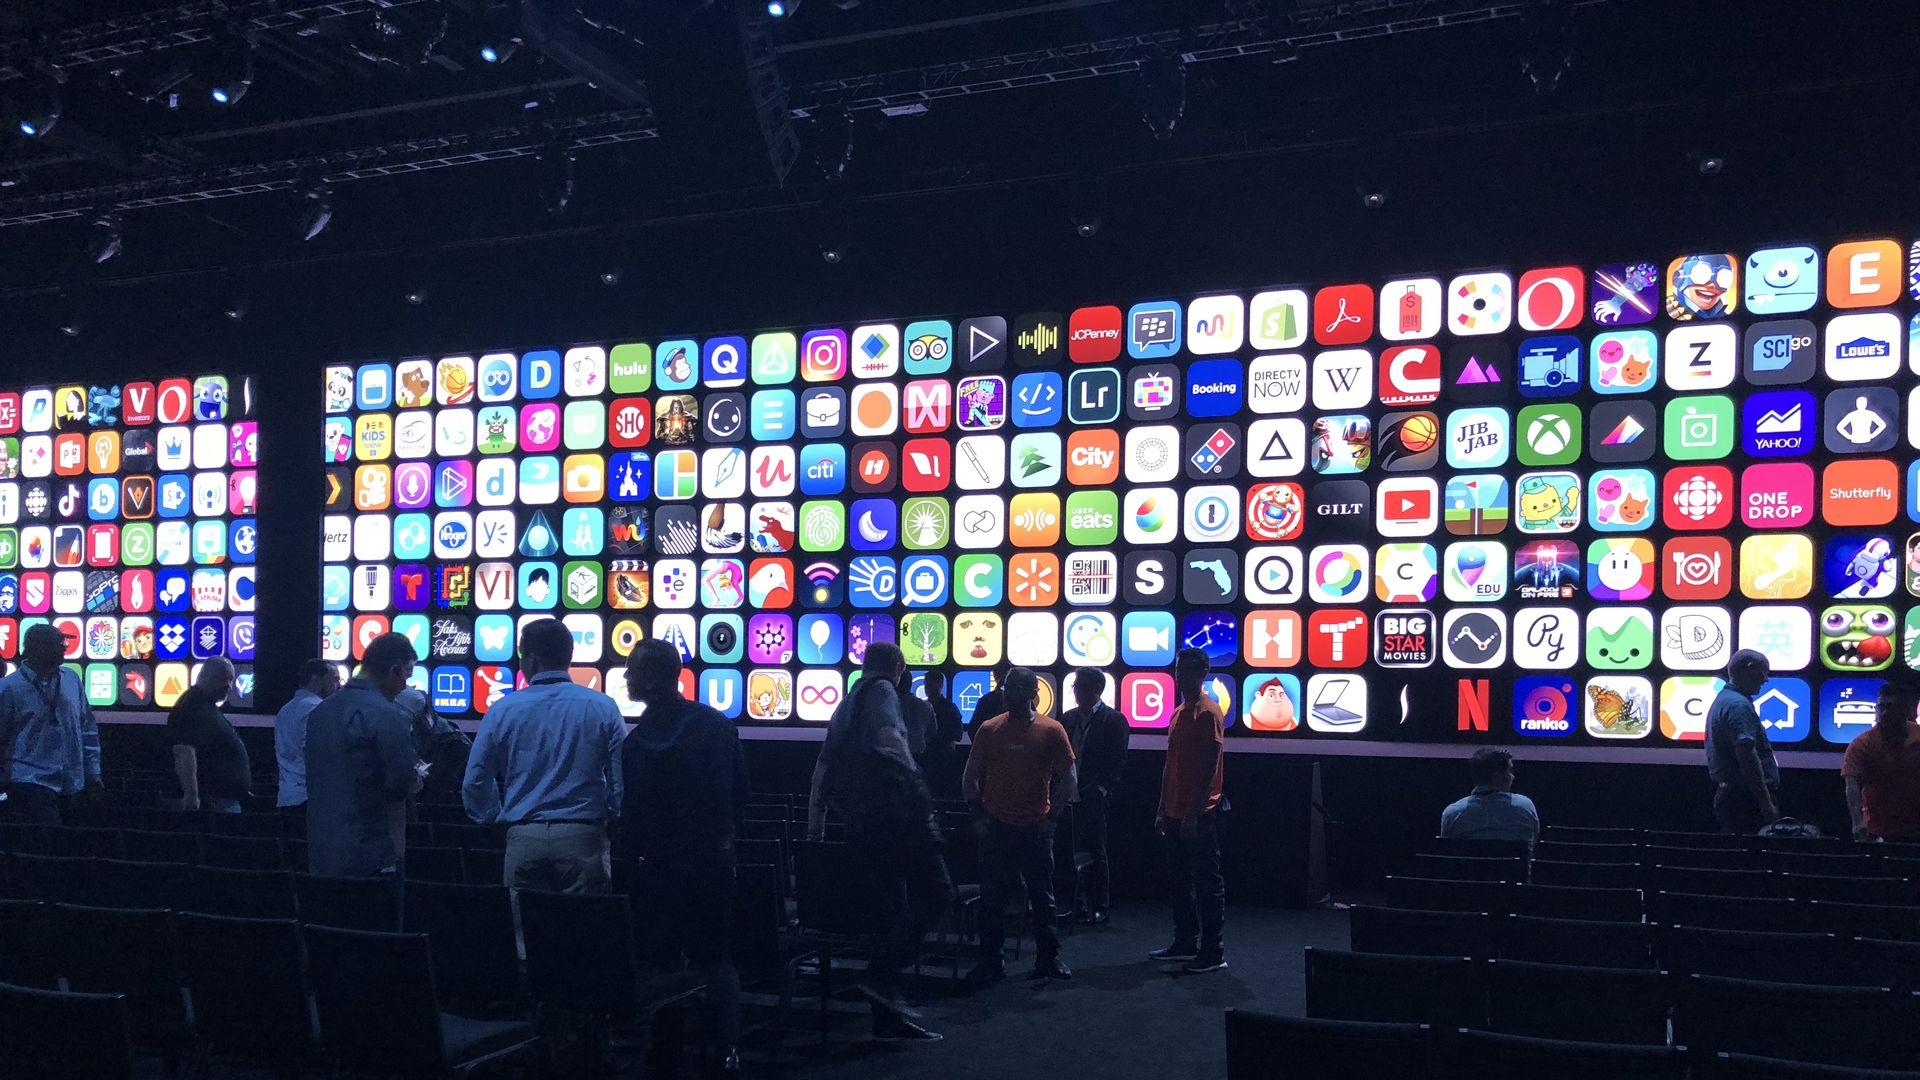 App icons at Apple's WWDC 2018.